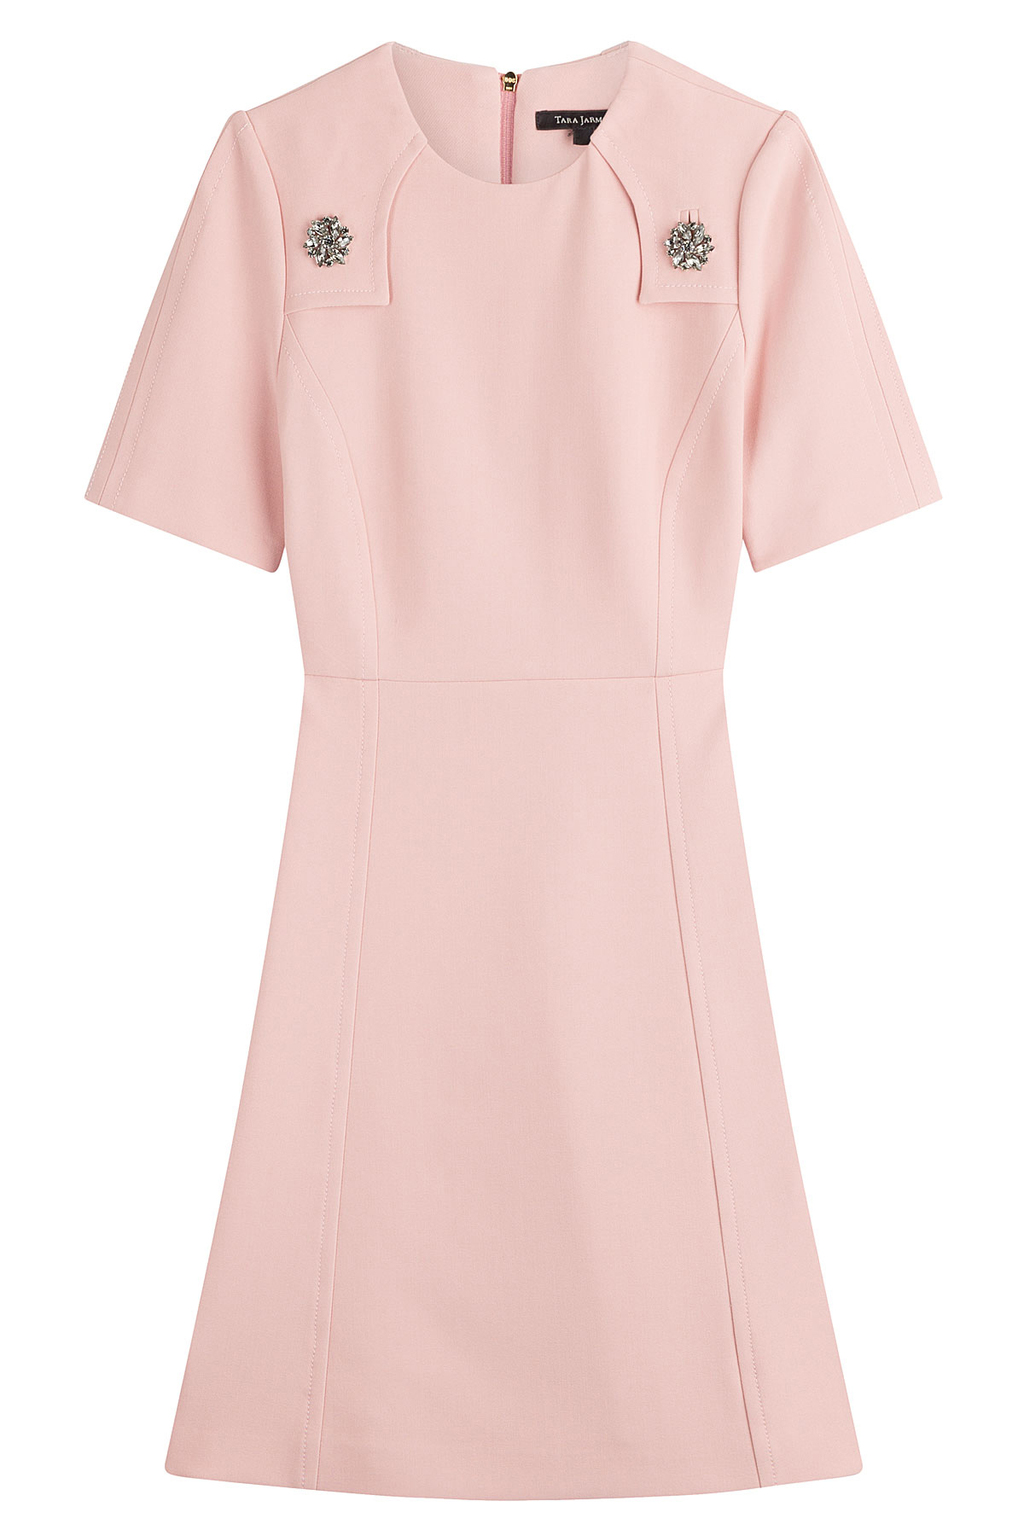 Dress With Embellishment Rose - style: shift; pattern: plain; predominant colour: blush; occasions: evening; length: just above the knee; fit: body skimming; fibres: polyester/polyamide - stretch; neckline: crew; sleeve length: short sleeve; sleeve style: standard; pattern type: fabric; texture group: woven light midweight; season: a/w 2016